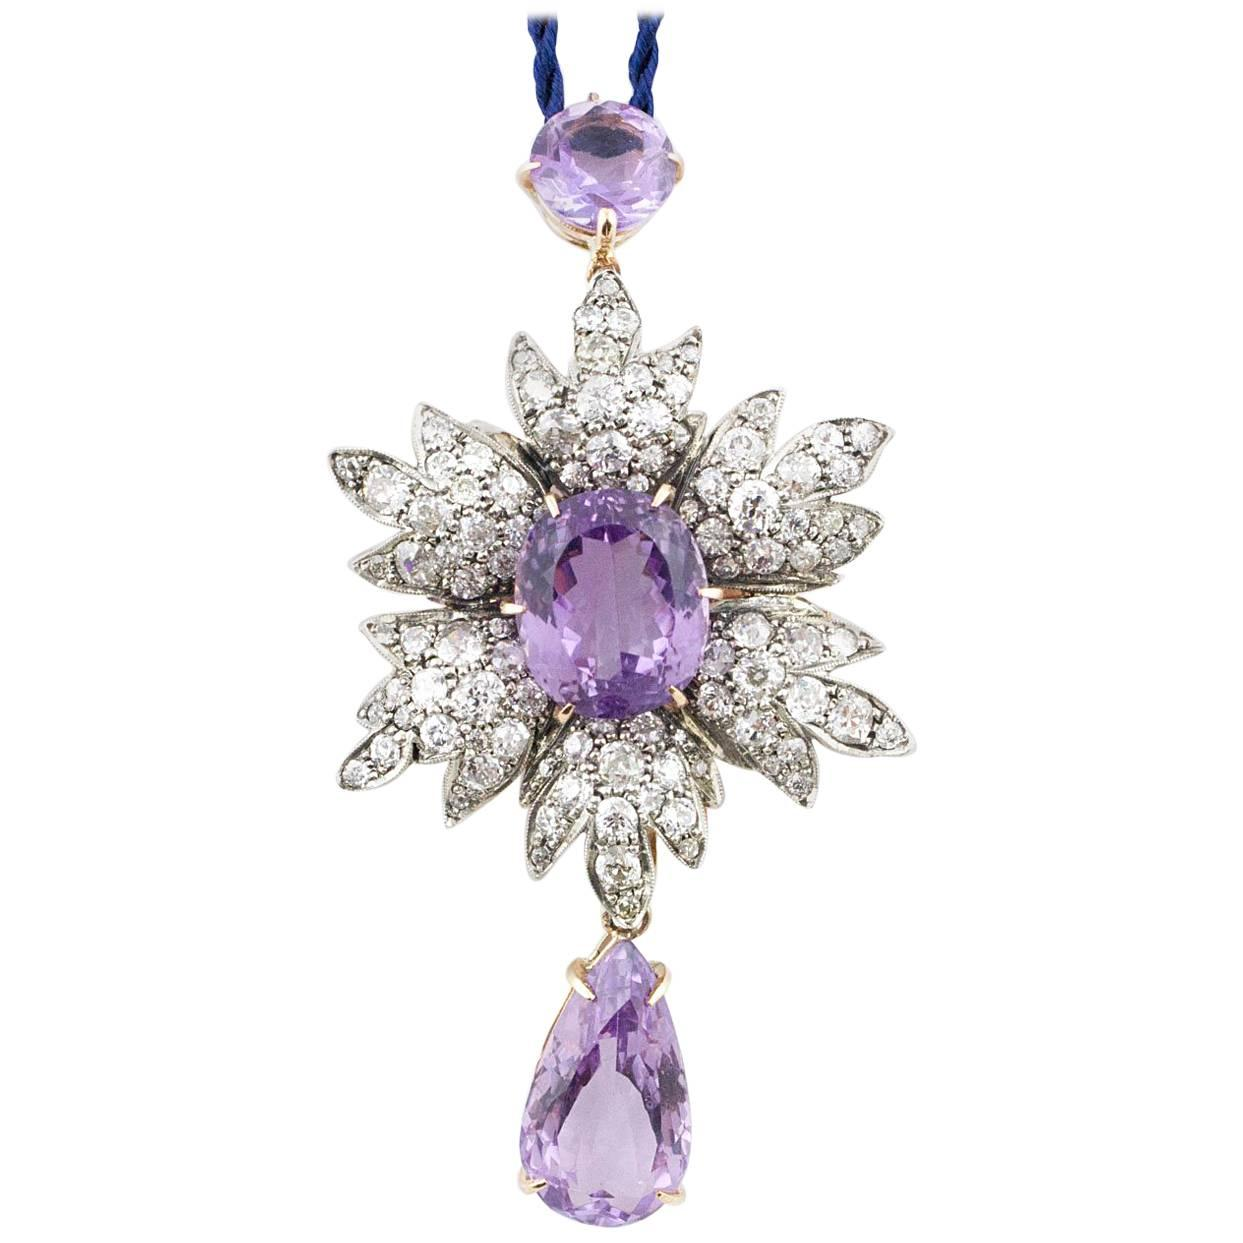 Gold and Silver Diamonds Amethyst Pendant/Necklace